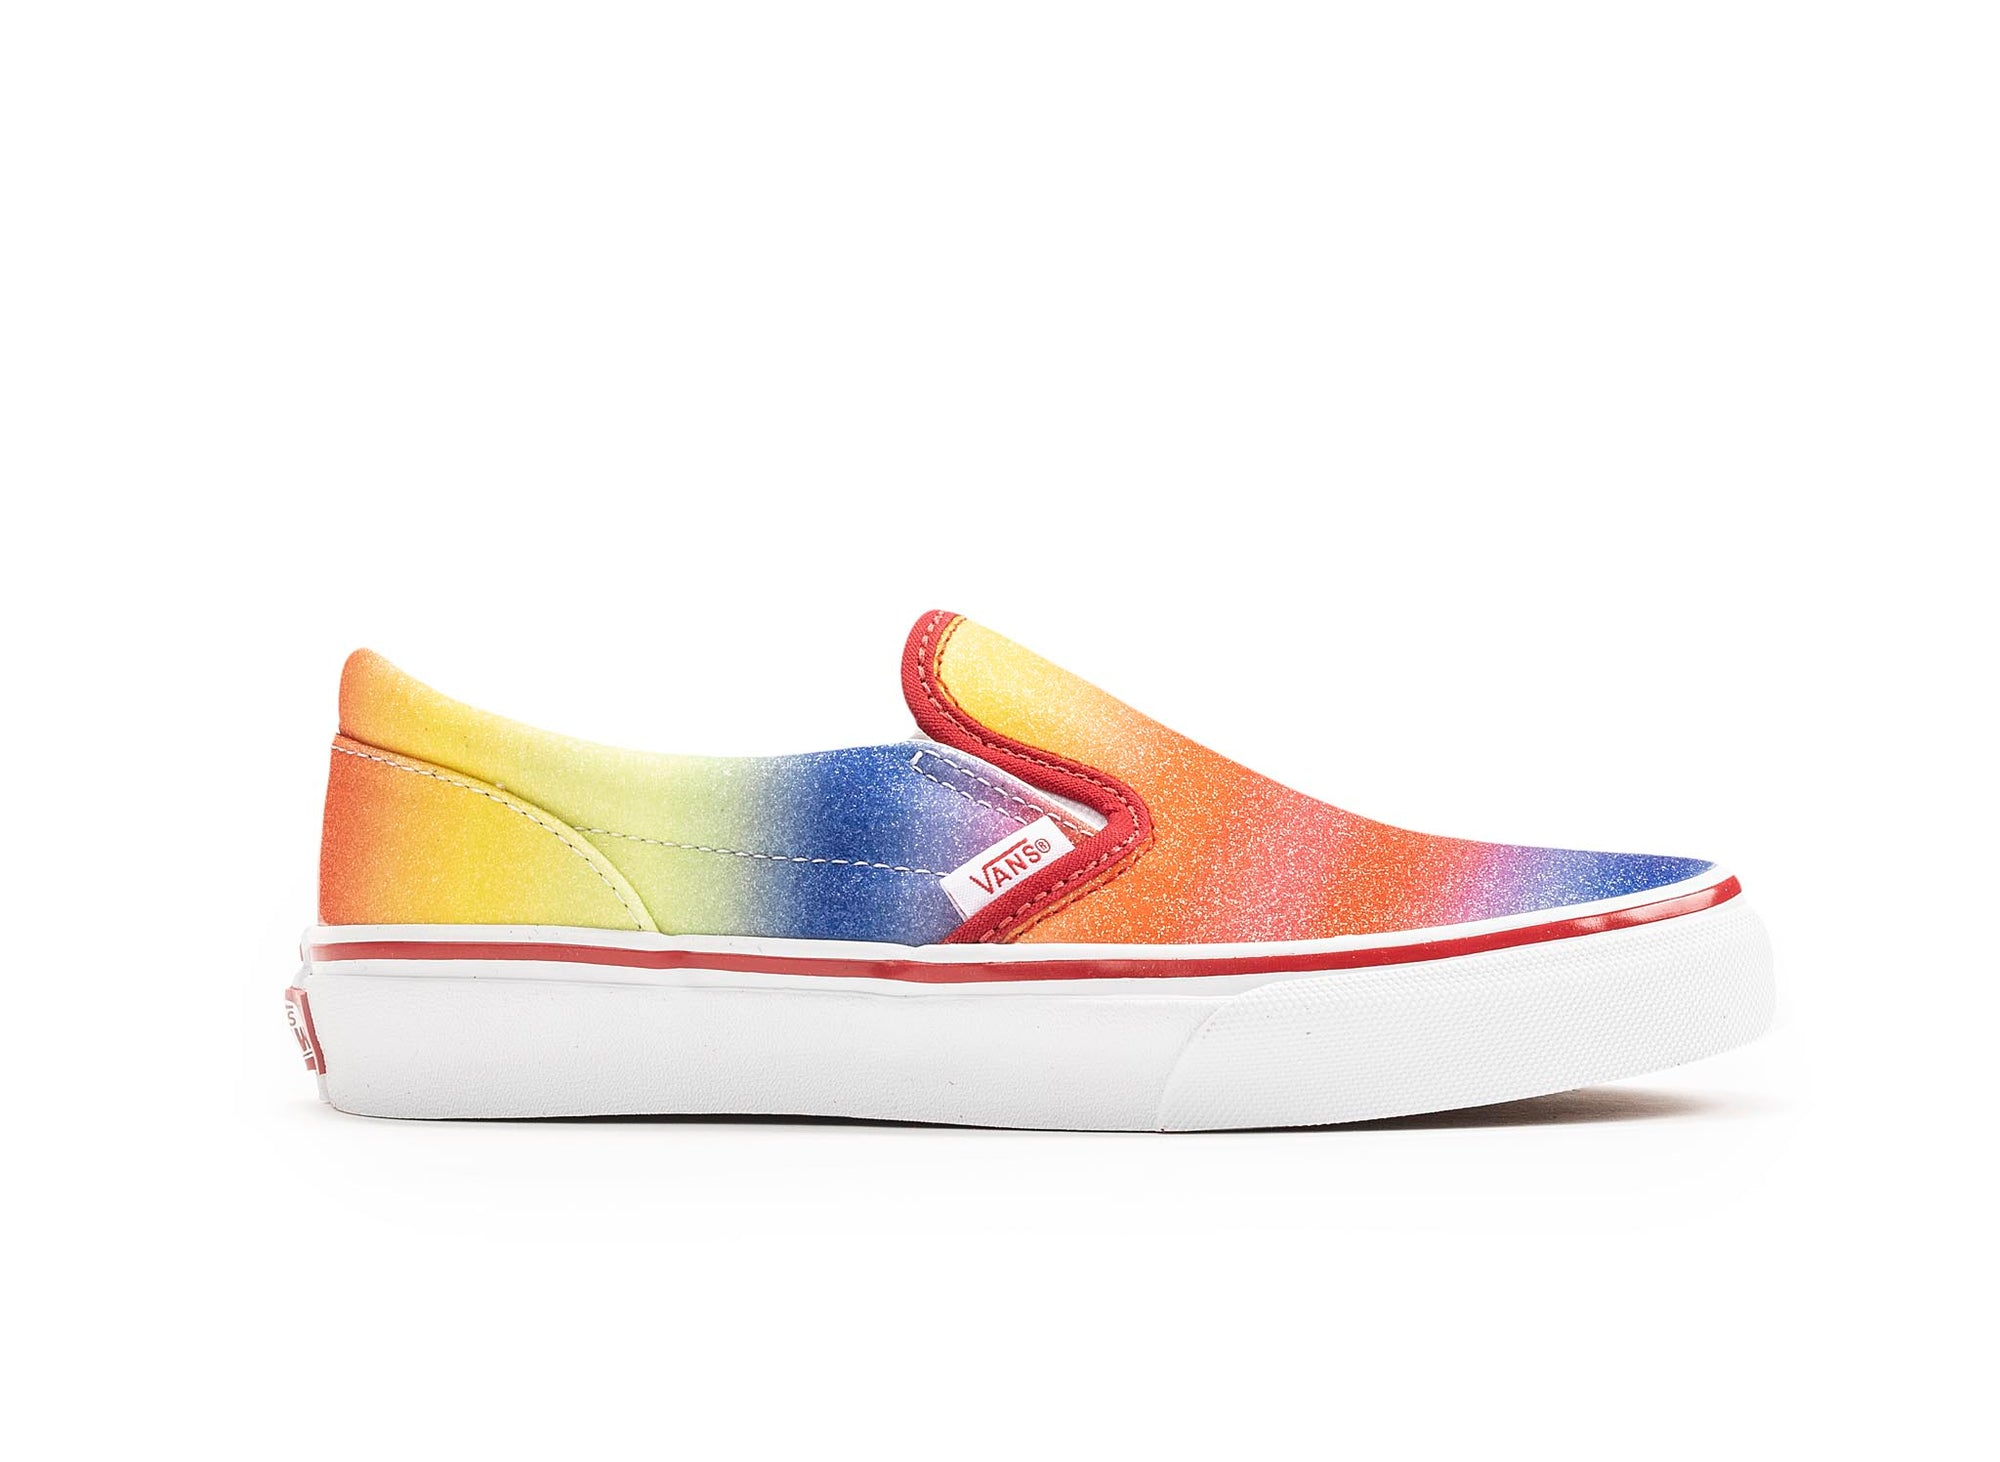 Vans Kids Rainbow Glitter Classic Slip-On